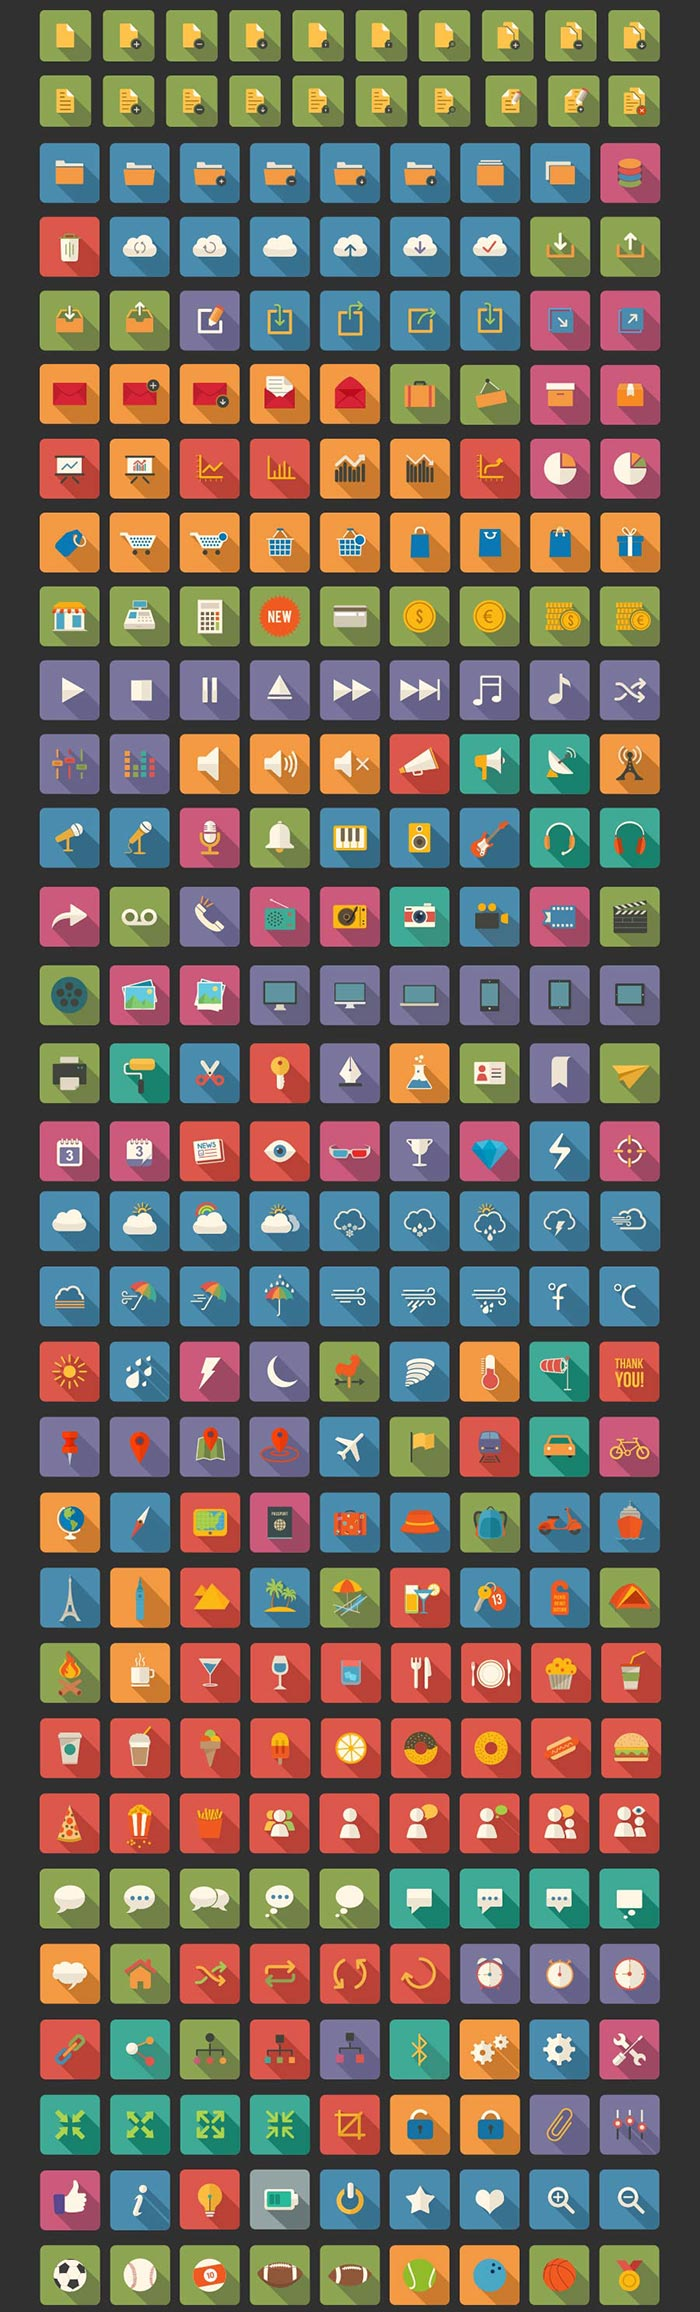 Tonicons-square-longshadow